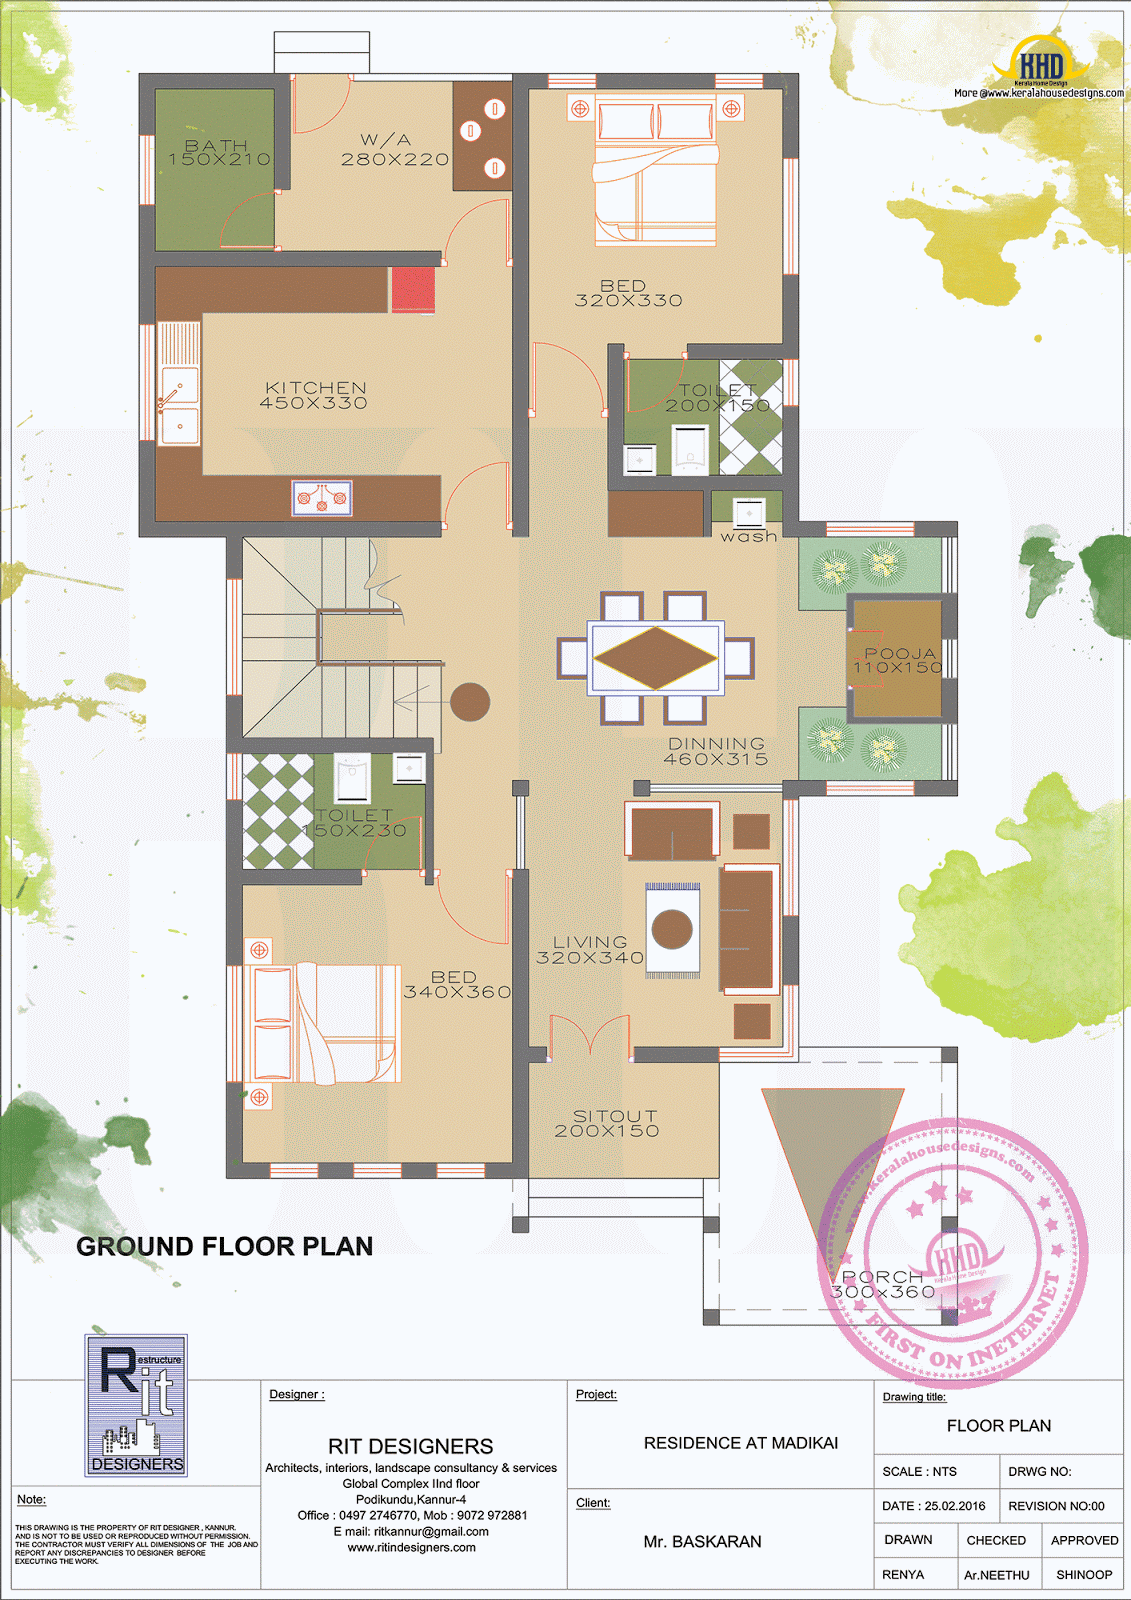 1800 sq ft floor 3 bedroom home with floor plan kerala Ground floor 3 bedroom plans